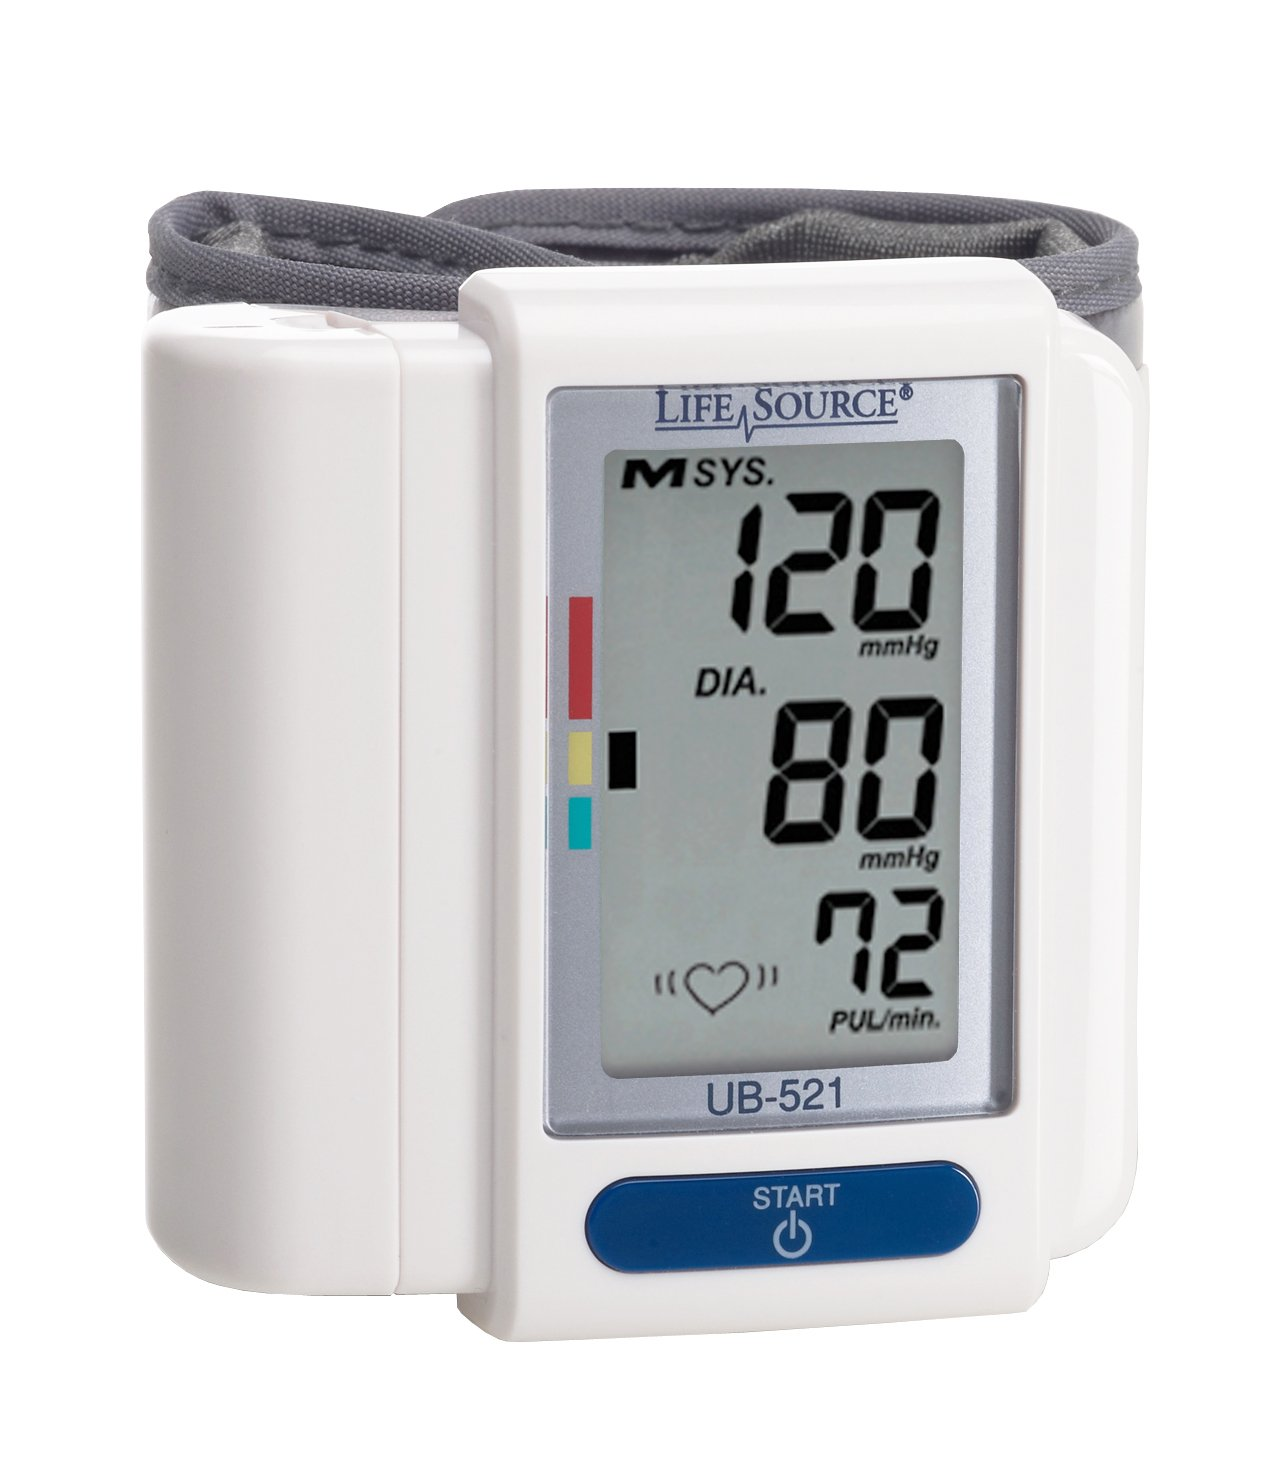 LifeSource Digital Wrist Blood Pressure Monitor (UB-521)